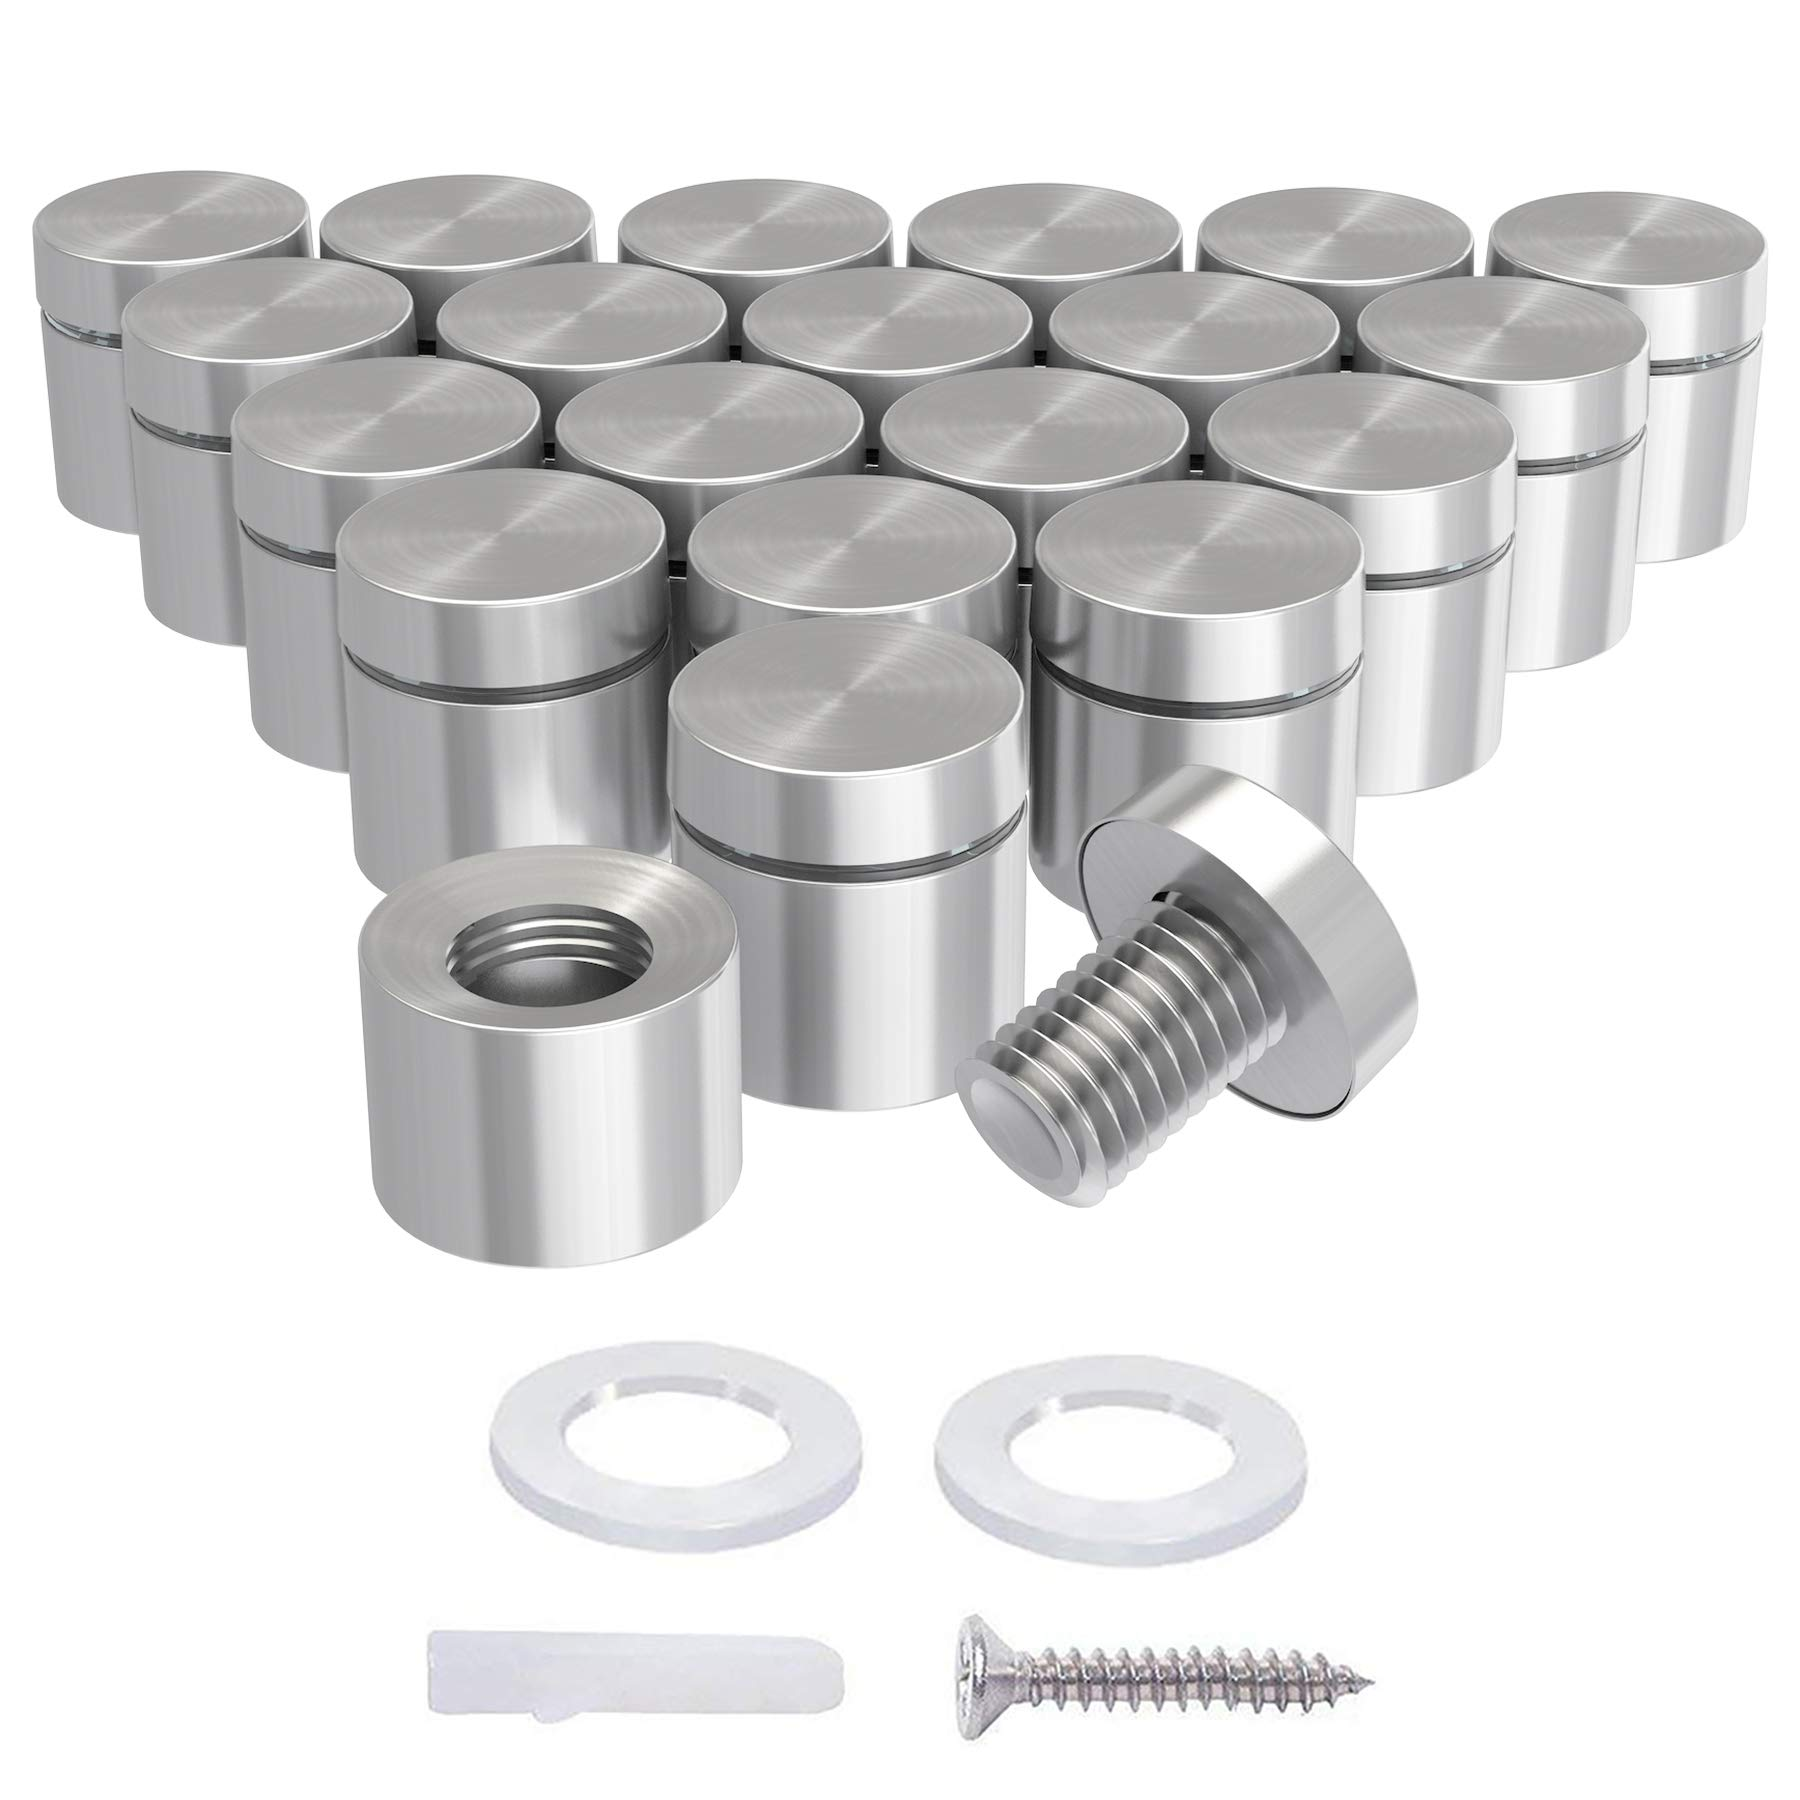 Acrylic Standoff Mounting Hardware Plexiglass Picture Stainless Steel Standoffs for Glass Panel LuckIn 20 Pack Sign Standoff Screws 1 x 1-1//5 in